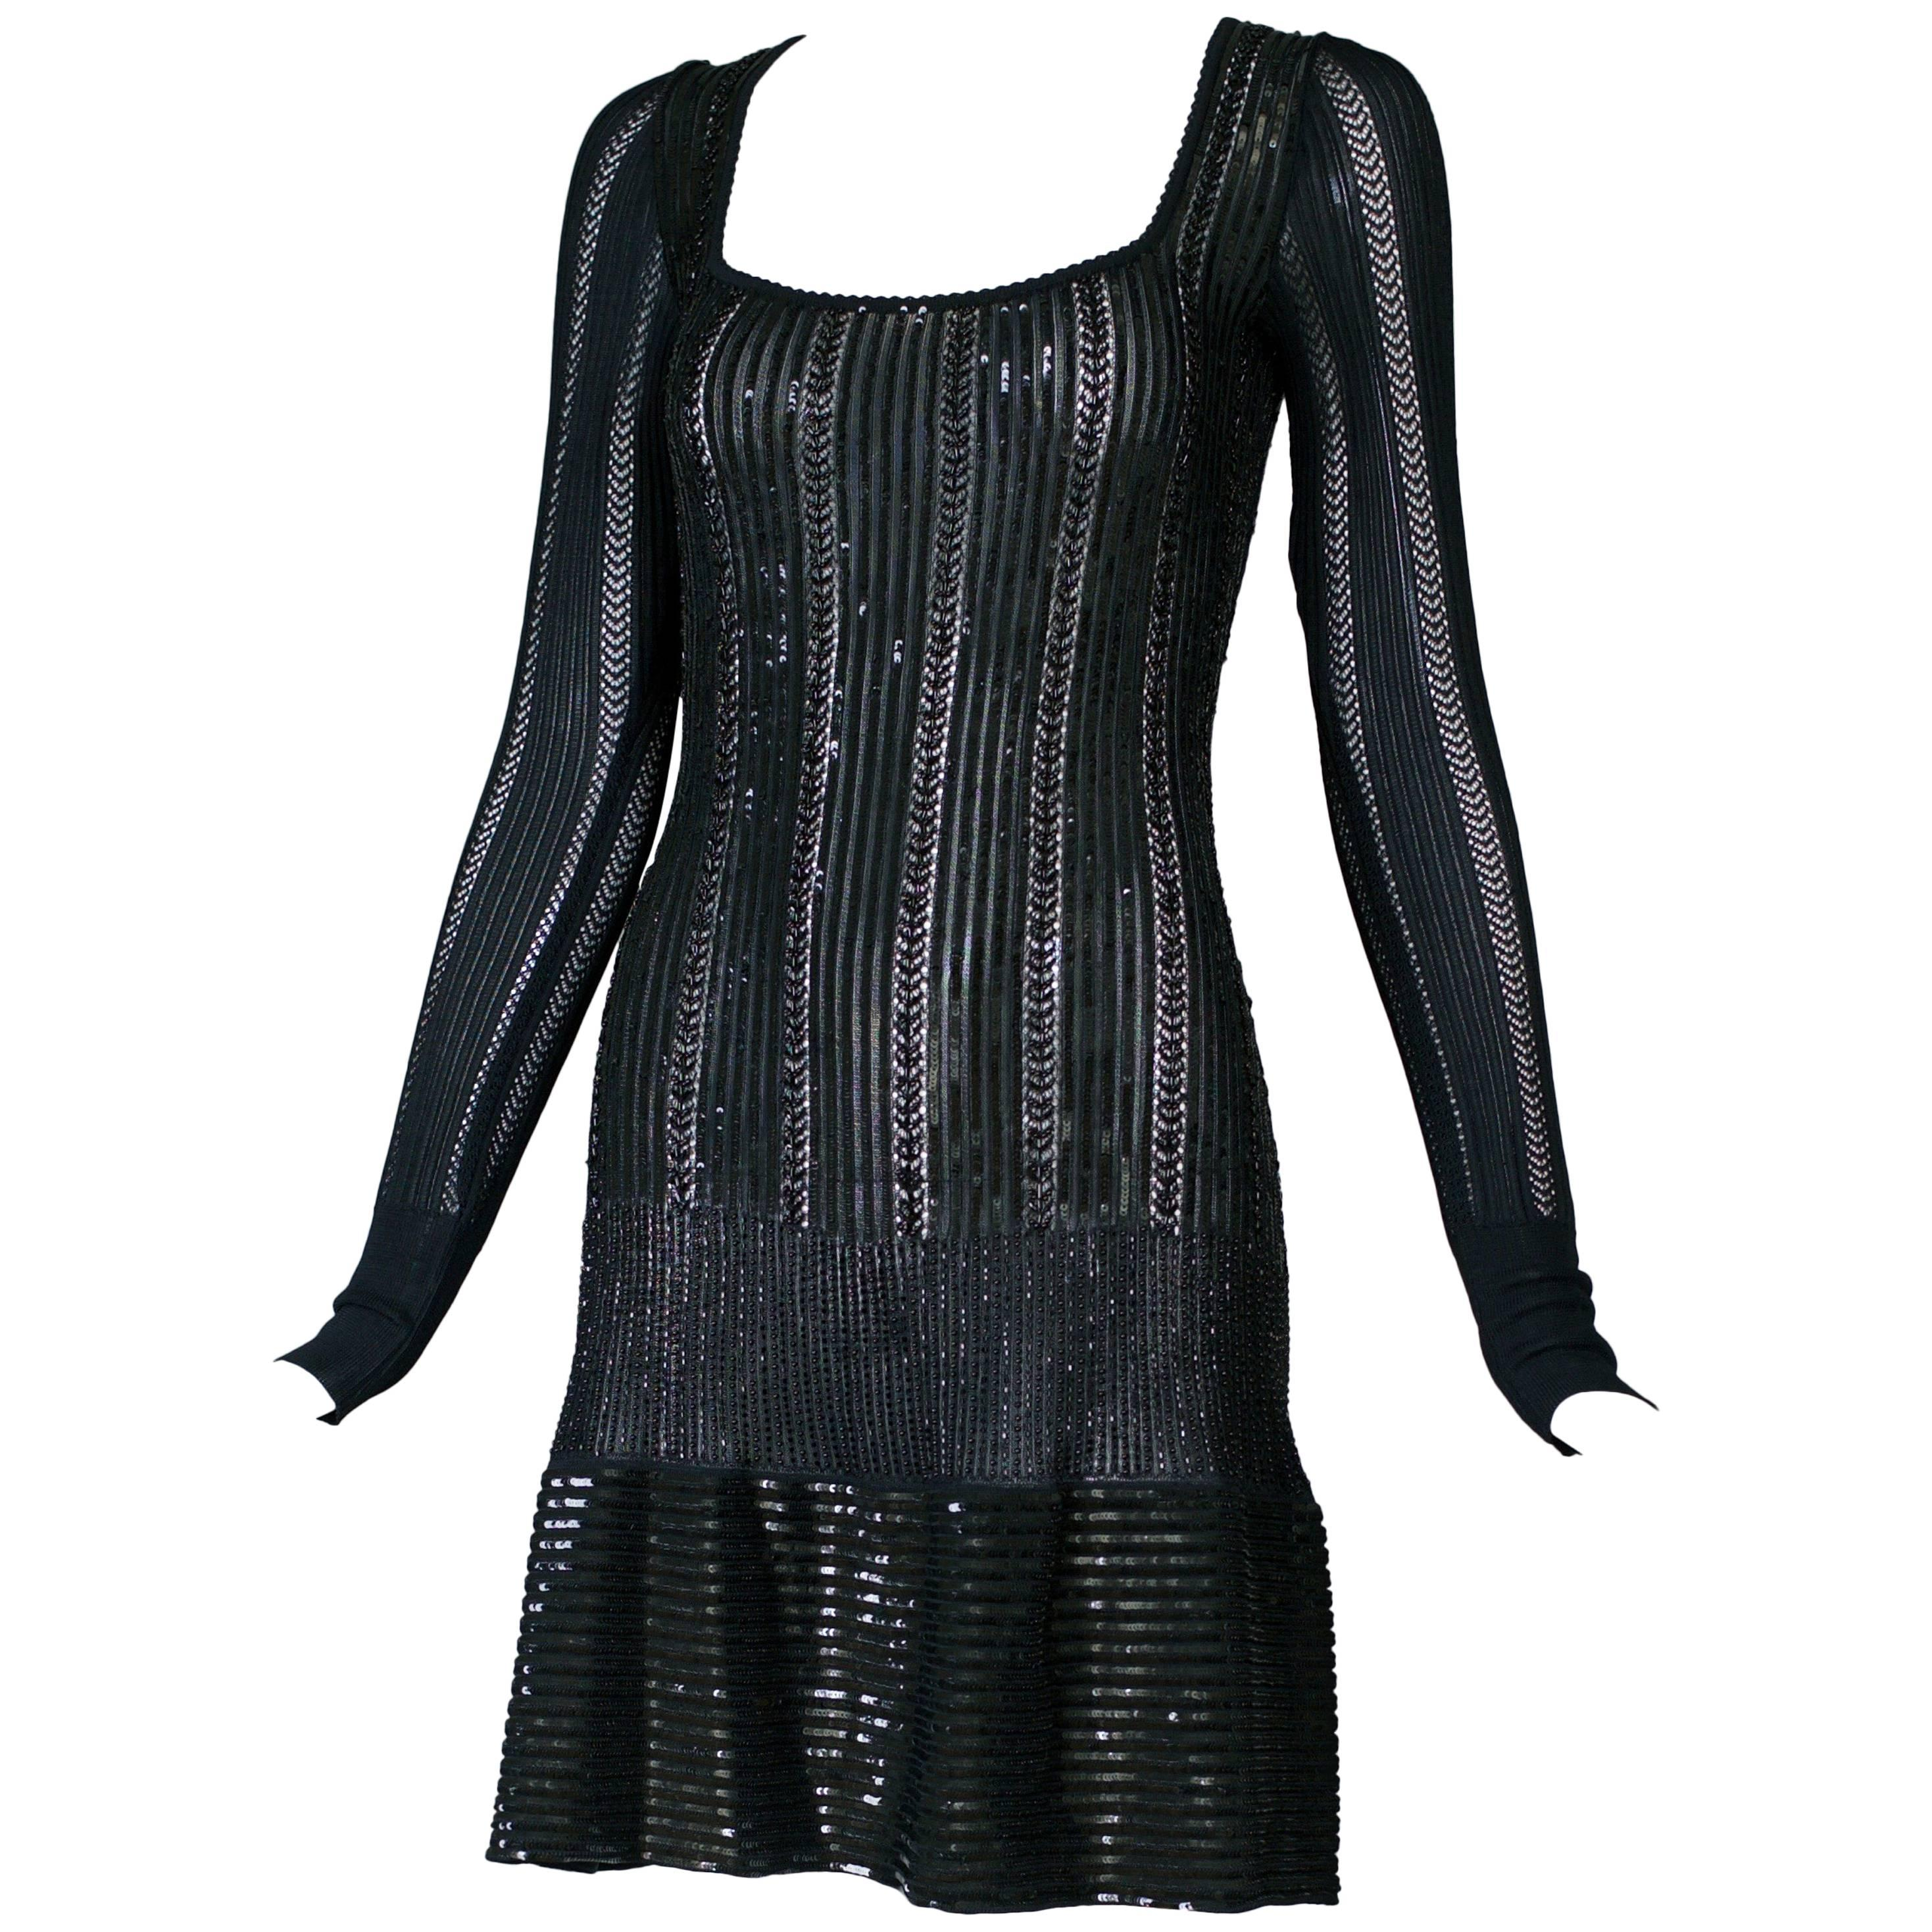 Azzedine Alaia Black BodyCon Beaded and Sequined Cocktail Dress, circa 1996